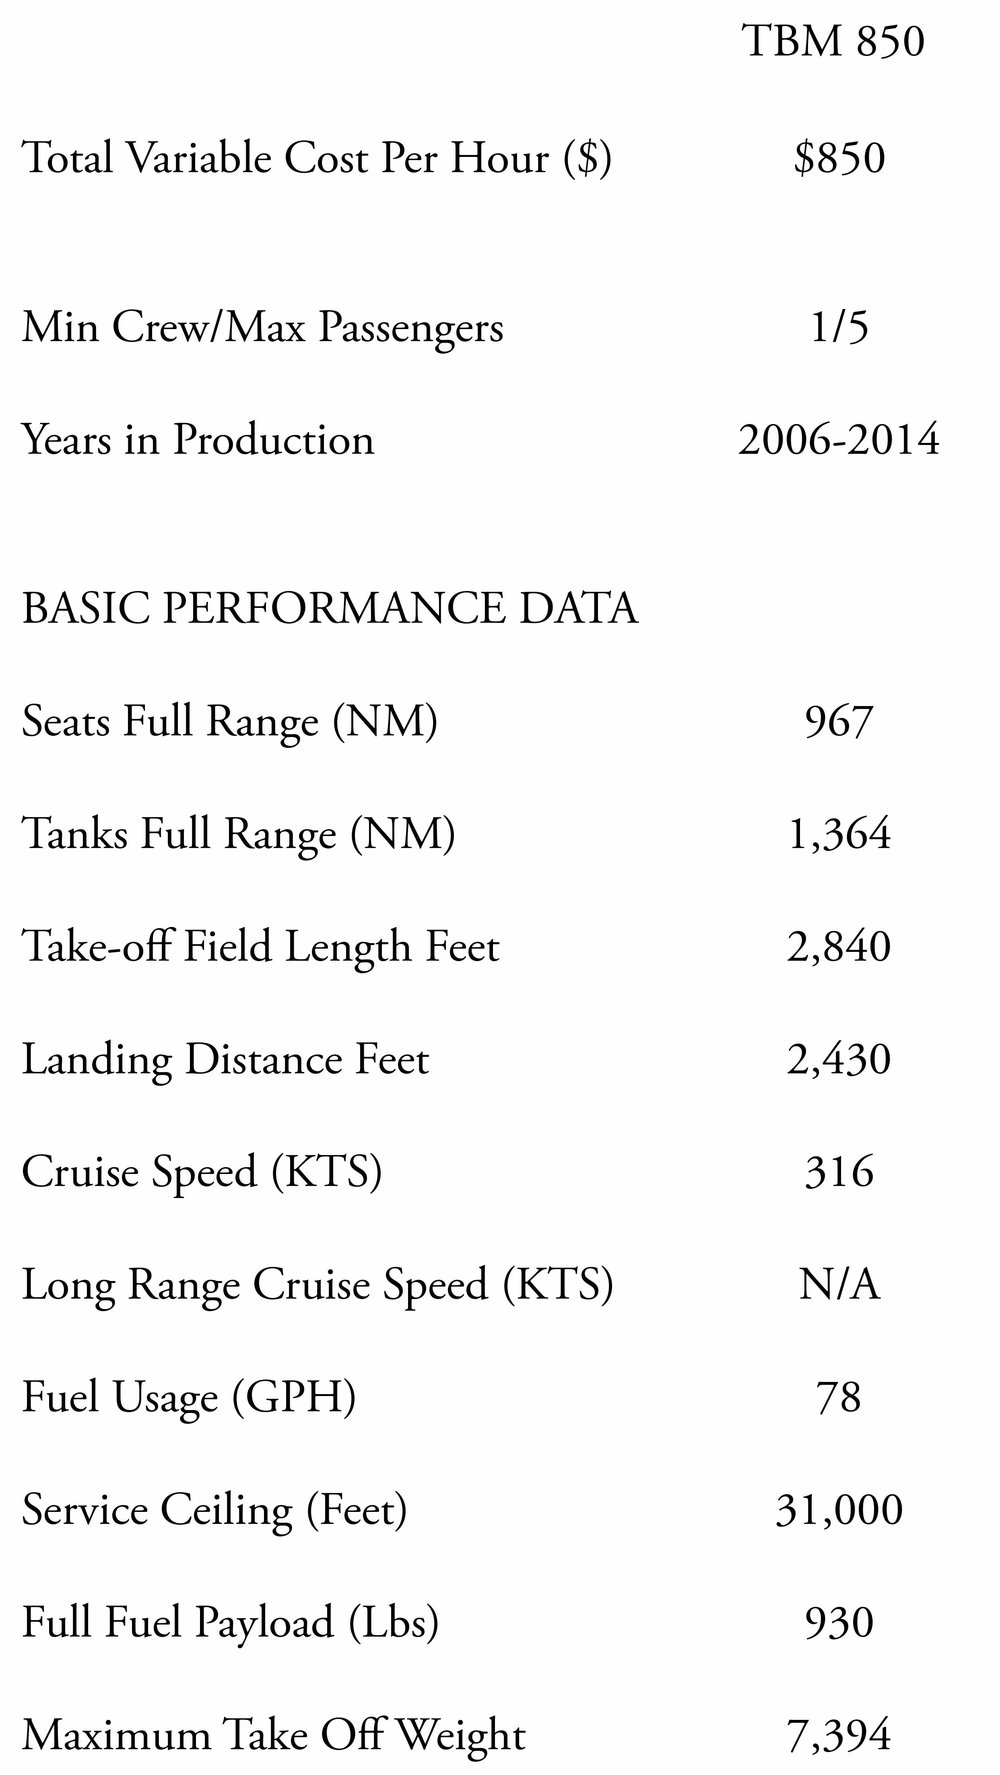 The TBM 850 spec sheet comparing performance data and cost data to the TBM 700 and TBM 900.